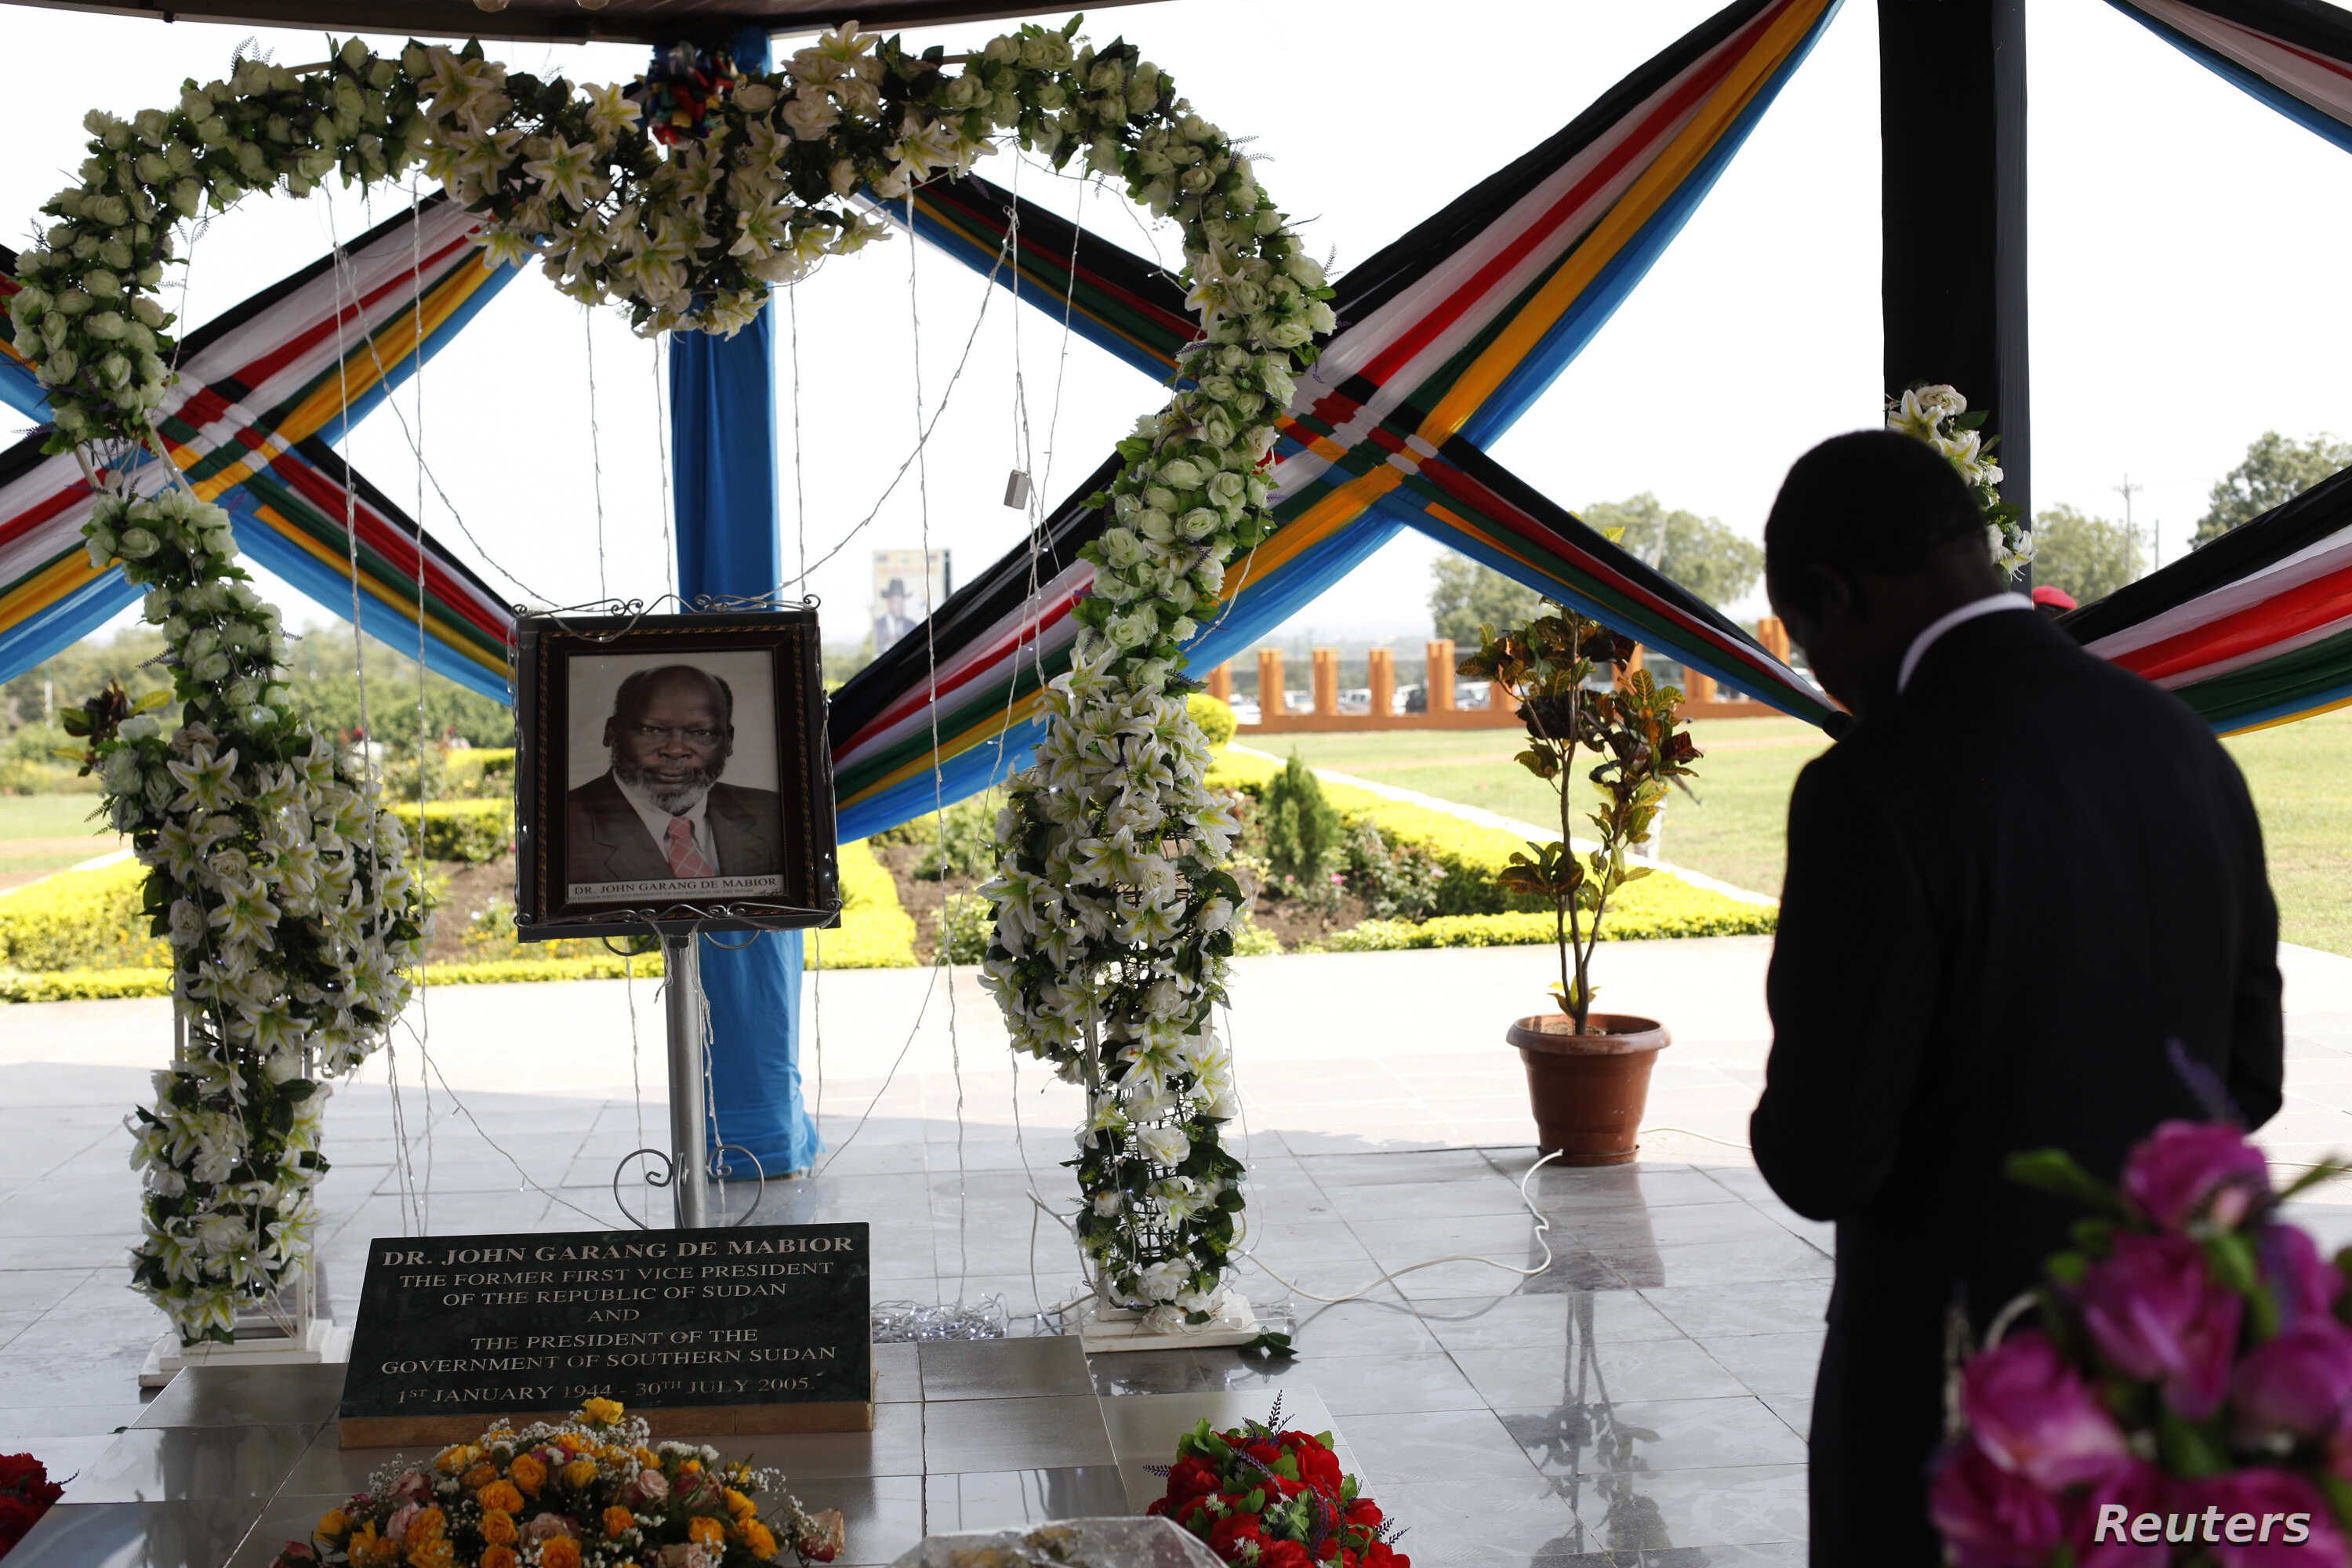 South Sudan's President Salva Kiir prays at the John Garang Memorial during events marking the third anniversary of South Sudan's independence in Juba, July 9, 2014.